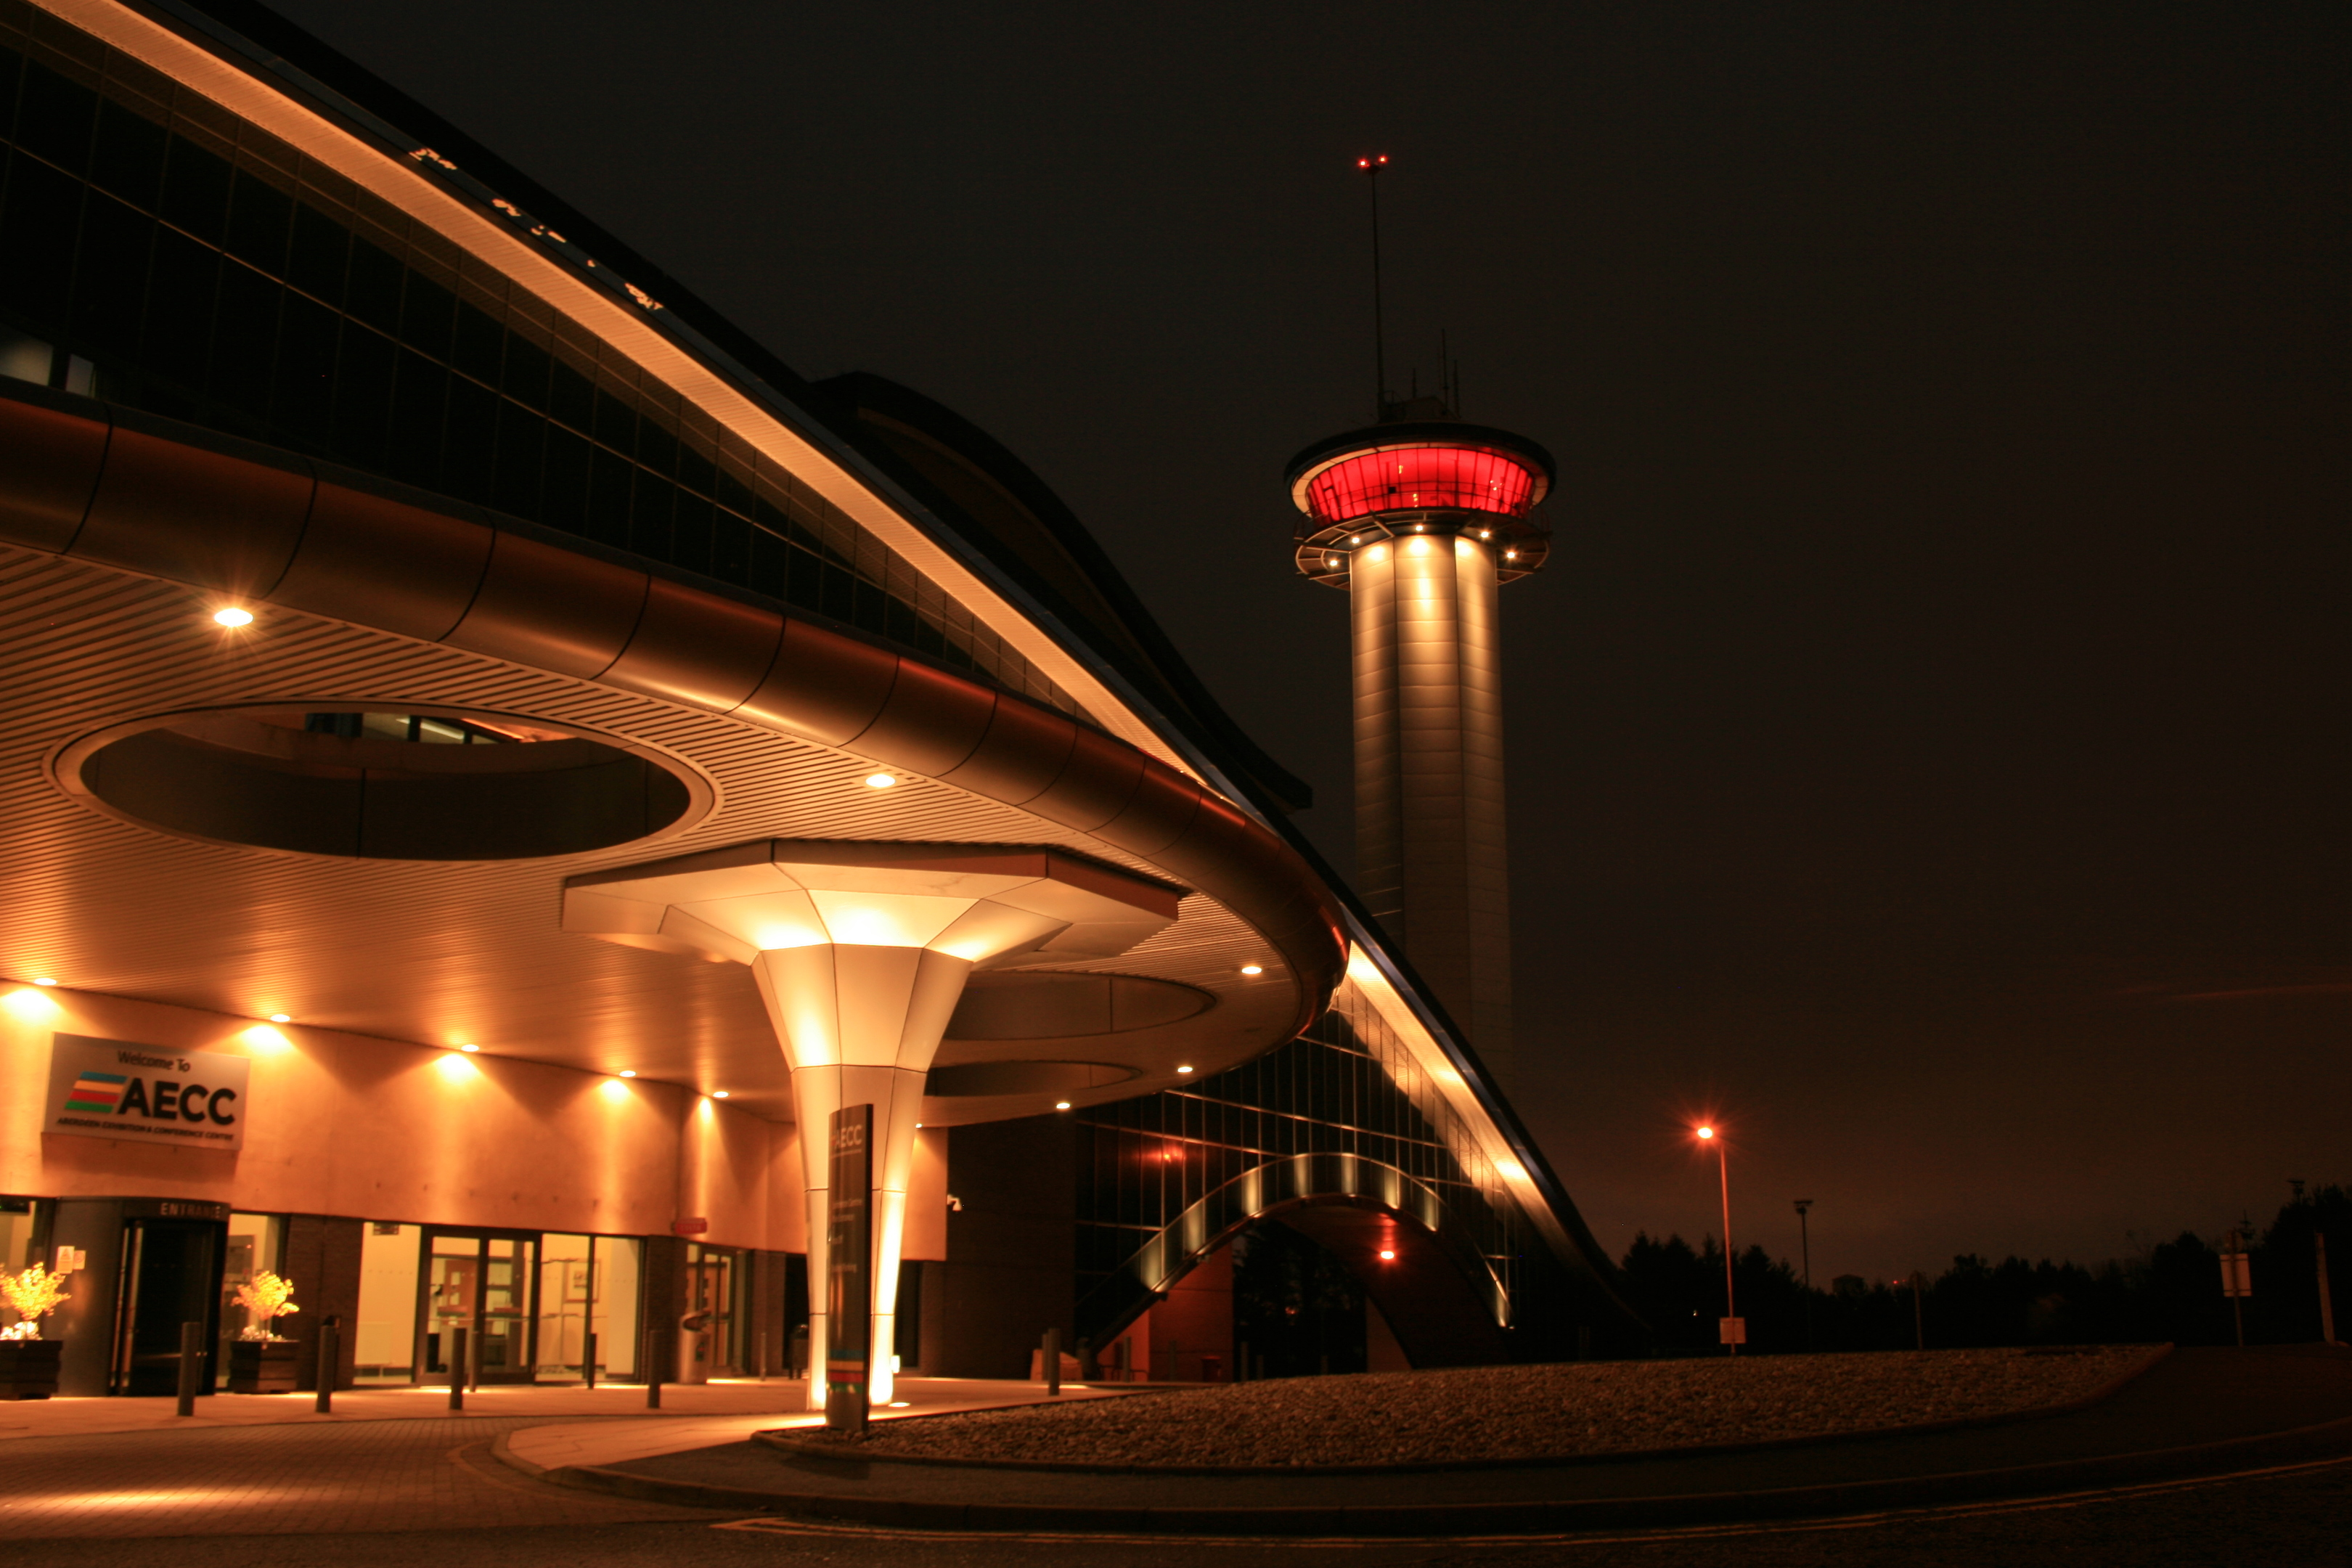 The AECC will be one of a number of buildings lit up red to support the Poppy Appeal.